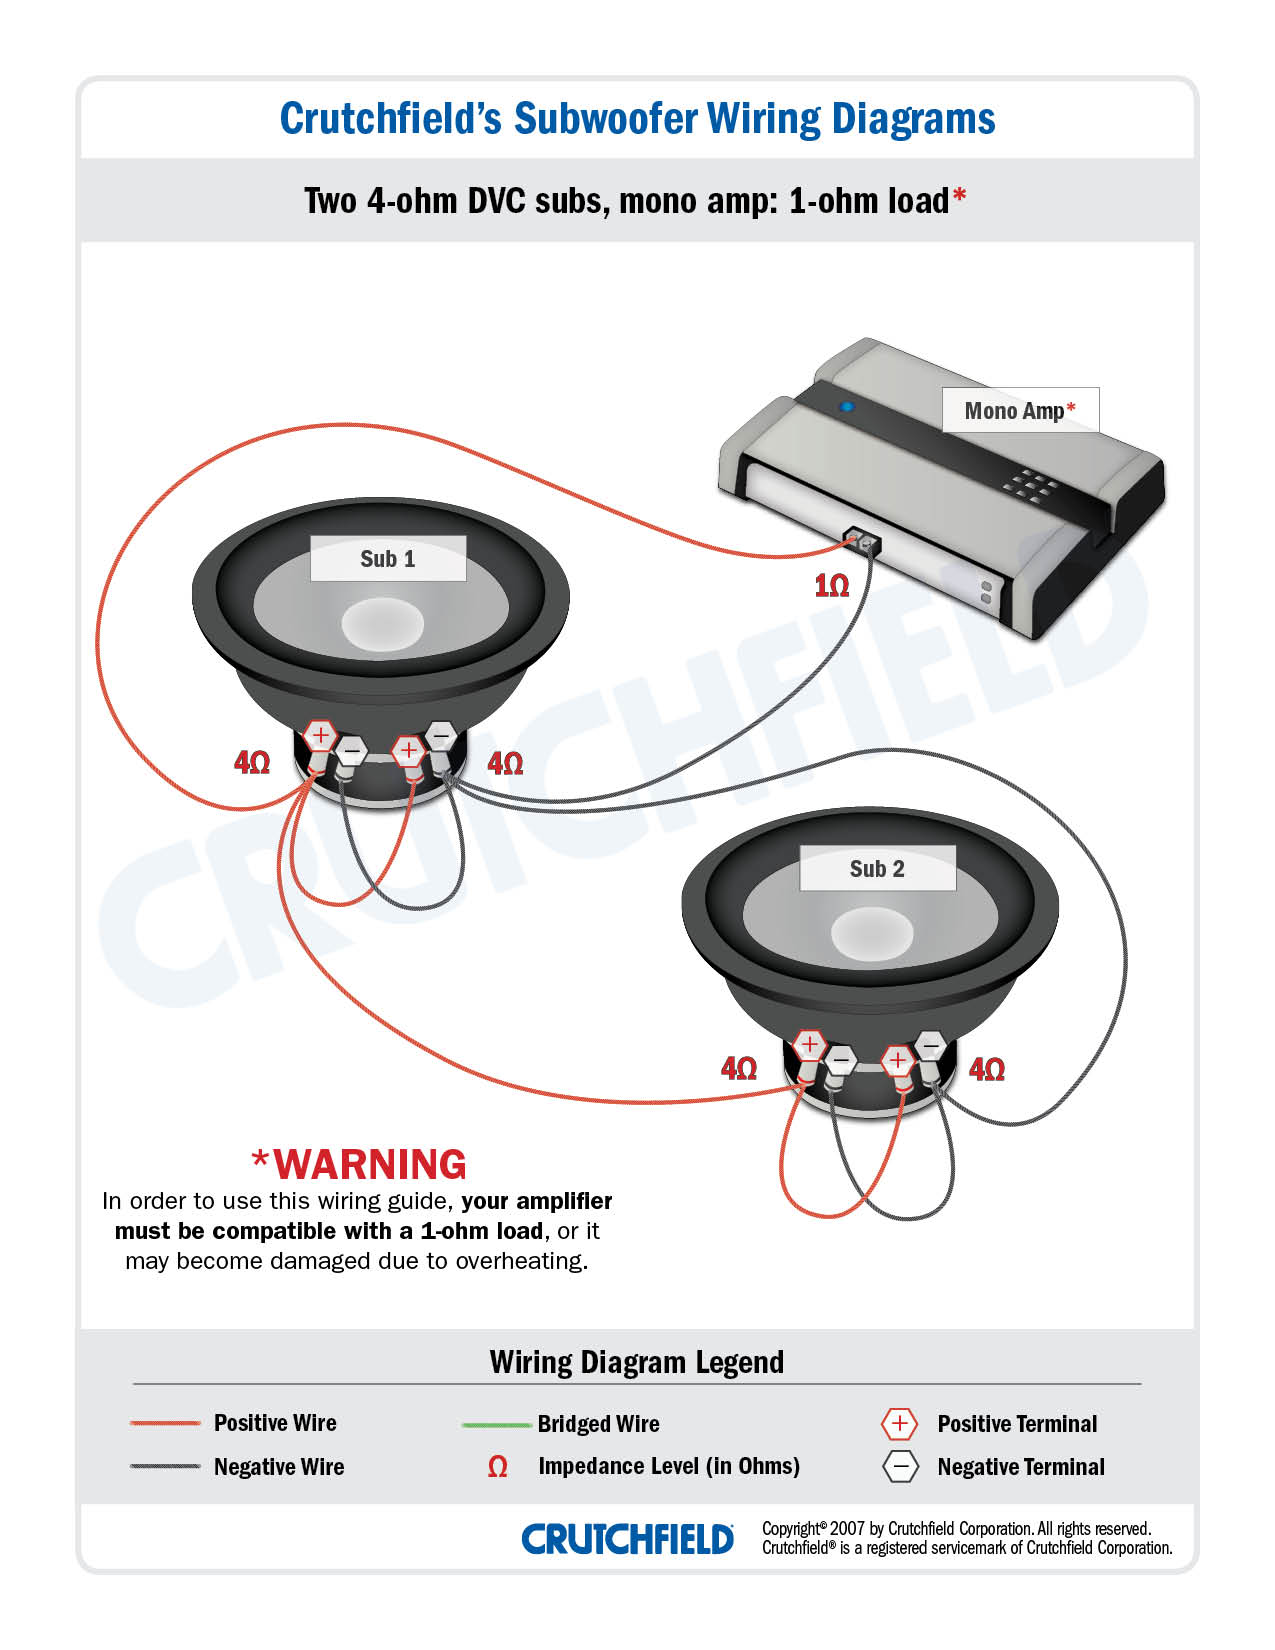 2 DVC 4 ohm mono low imp subwoofer wiring diagrams,Subwoofer Wiring Diagrams To 1 Ohm 2 Subs